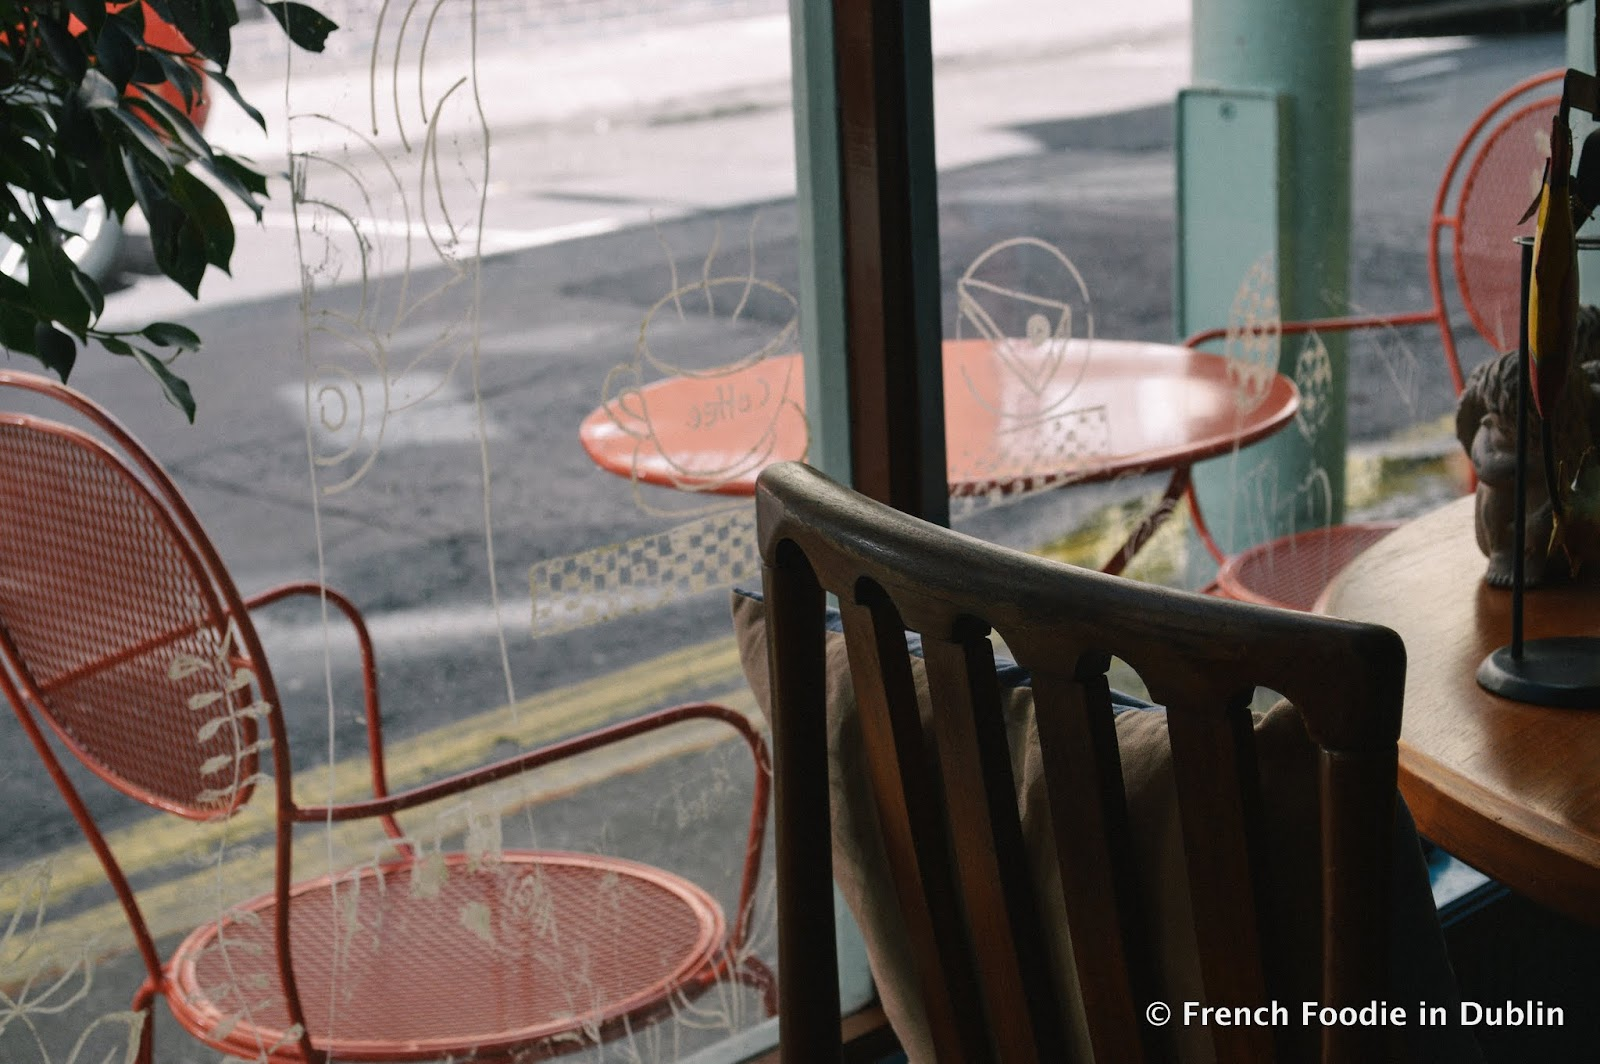 Caf crush love is art french foodie in dublin food blog i was by myself on my first visit but all the little ornaments hanging from the ceiling and hanging on the walls kept me occupied while i drank what must be solutioingenieria Image collections